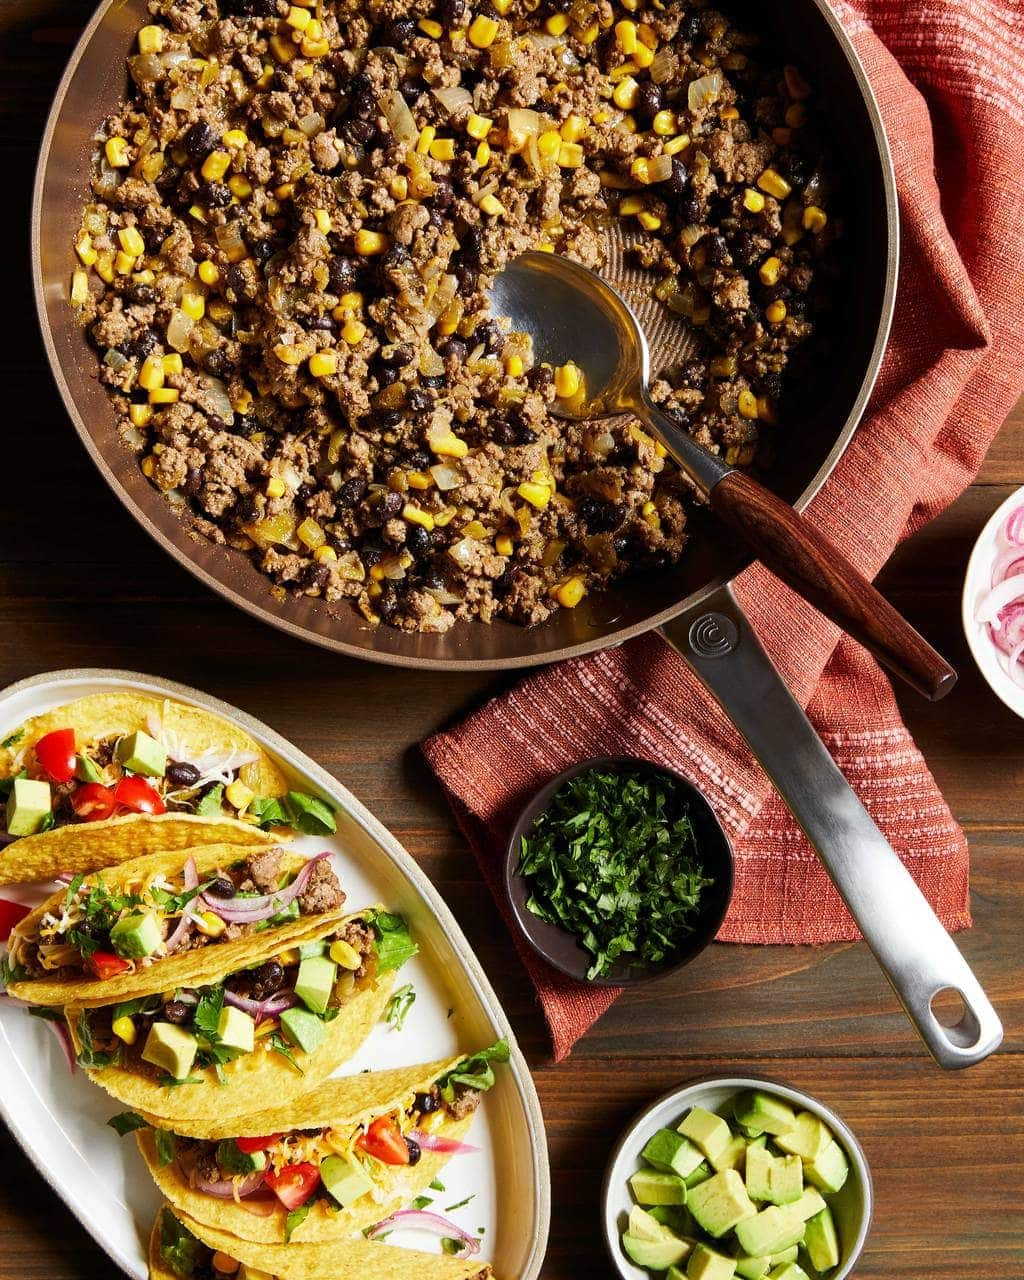 Chili Beef Tacos in a Circulon Skillet